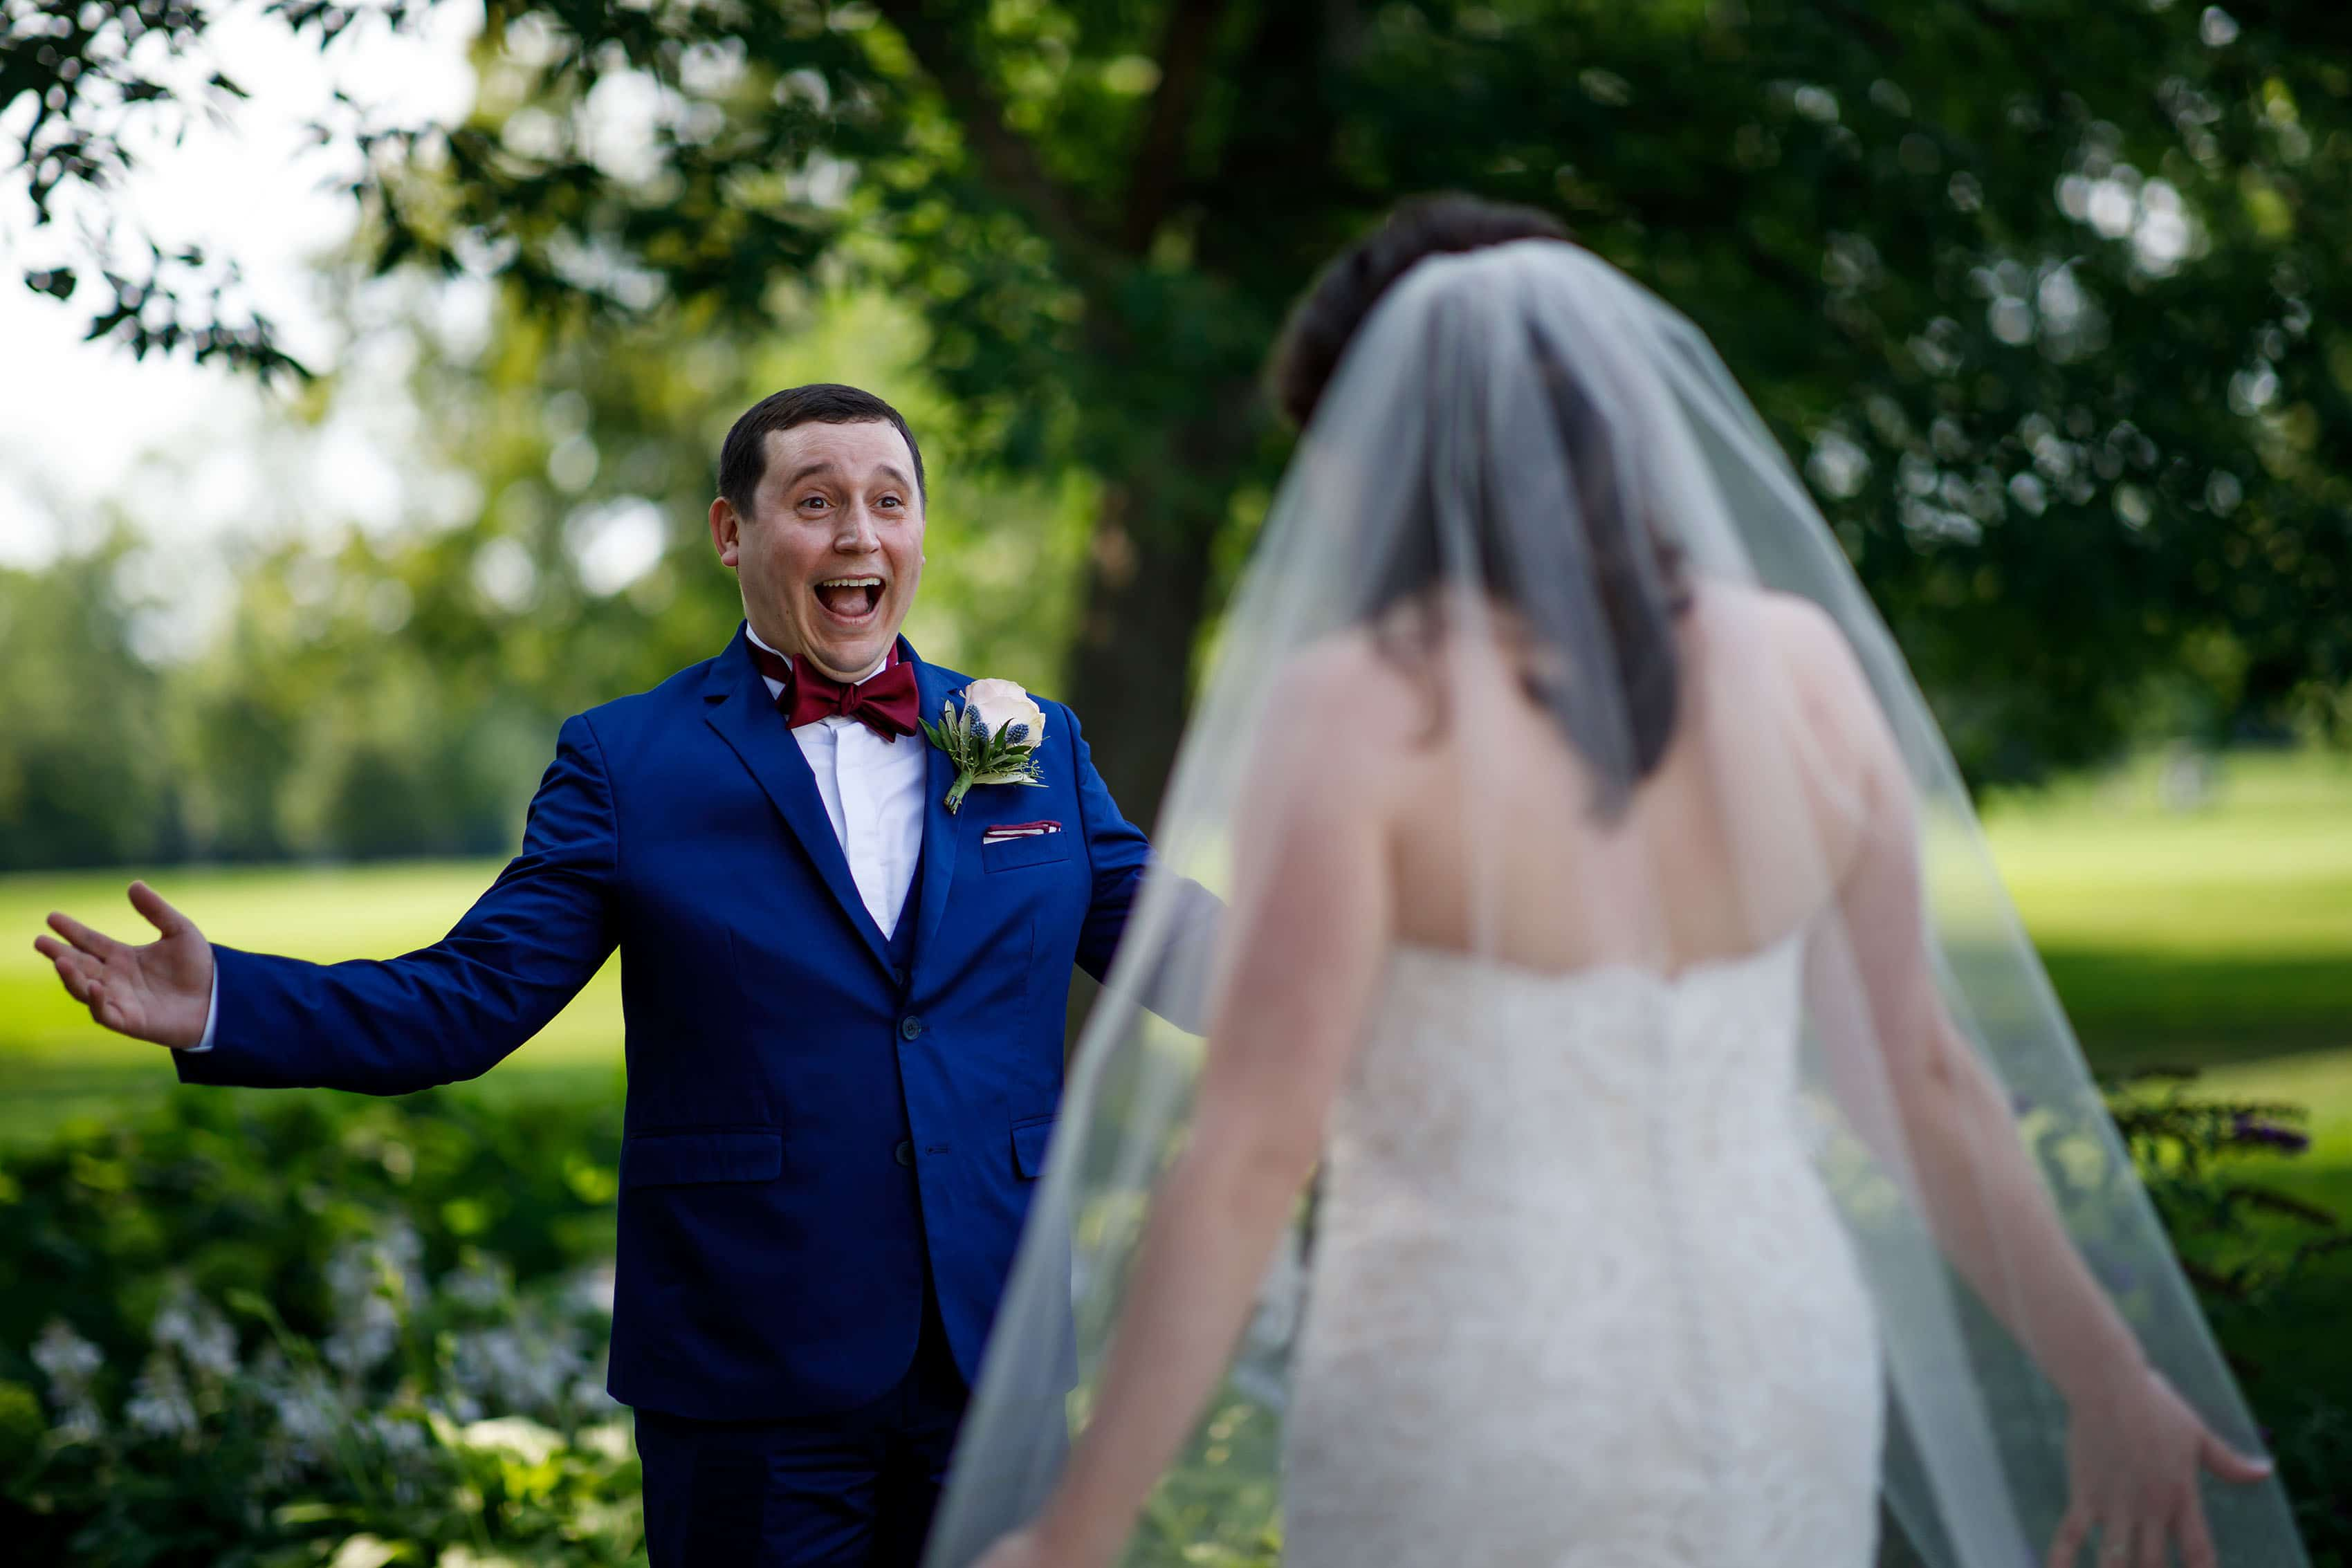 Joel reacts to seeing his bride during their first look at Ravisloe Country Club